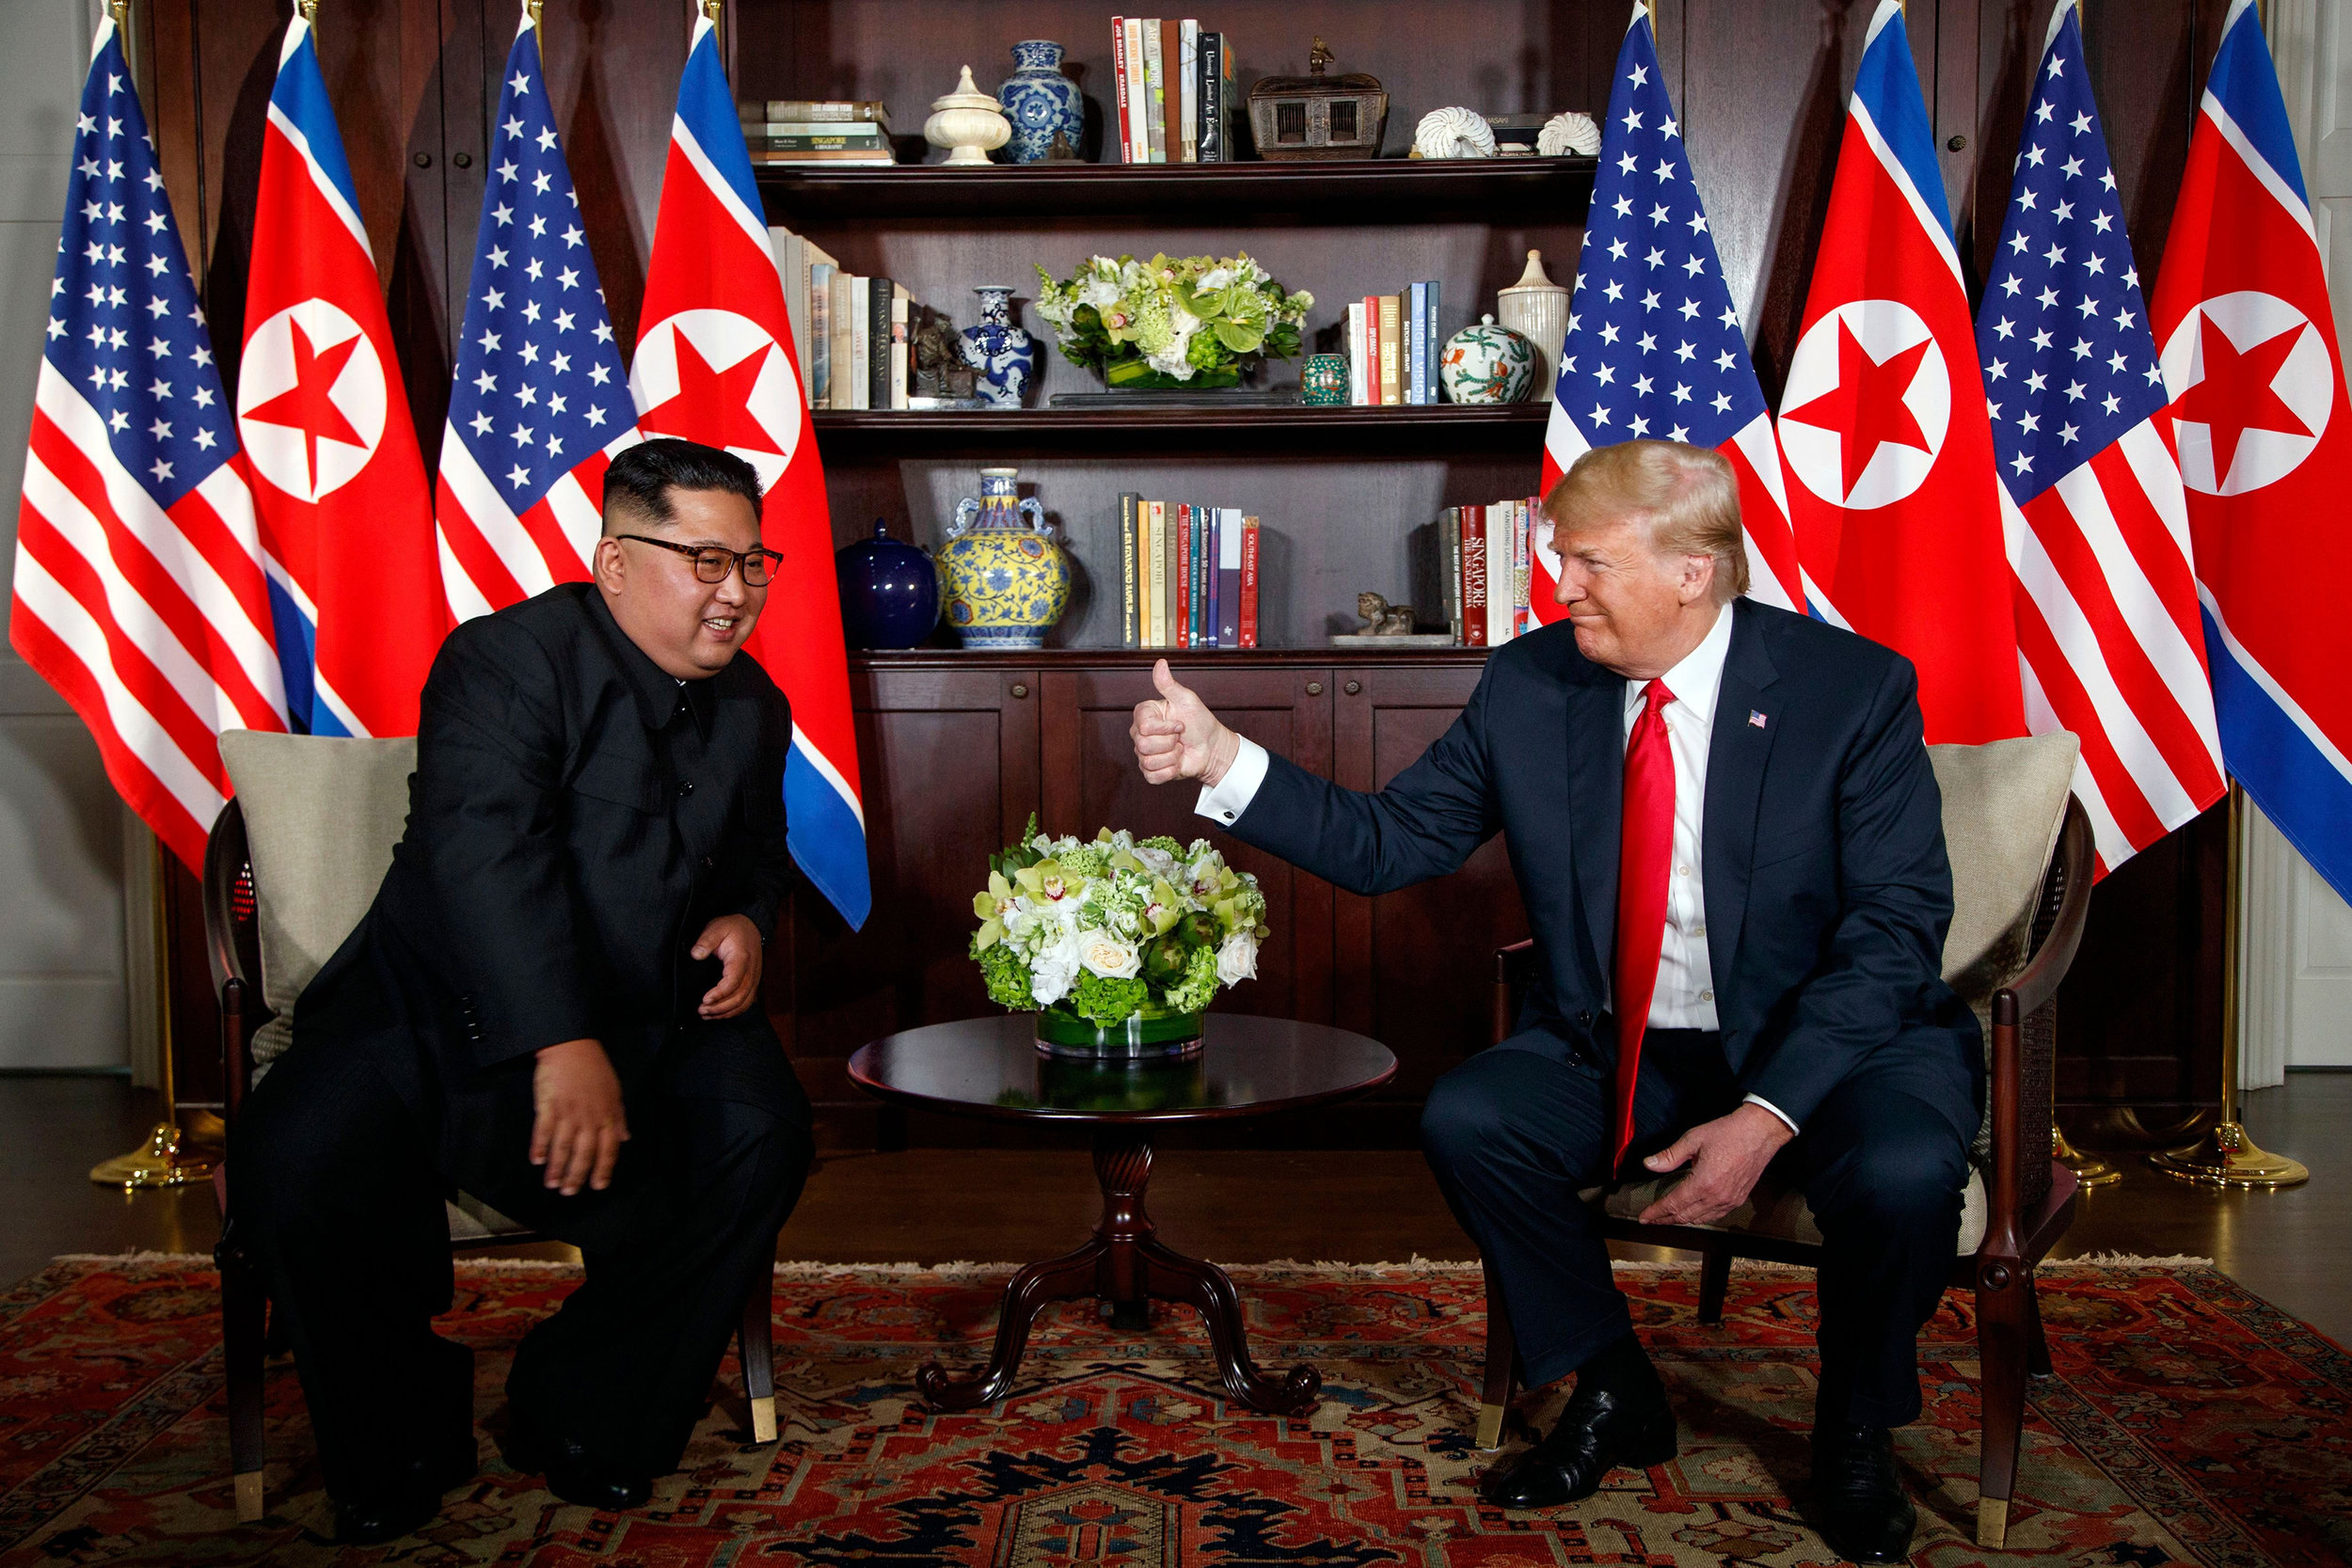 donald-trump-kim-jong-un-summit-4.jpg